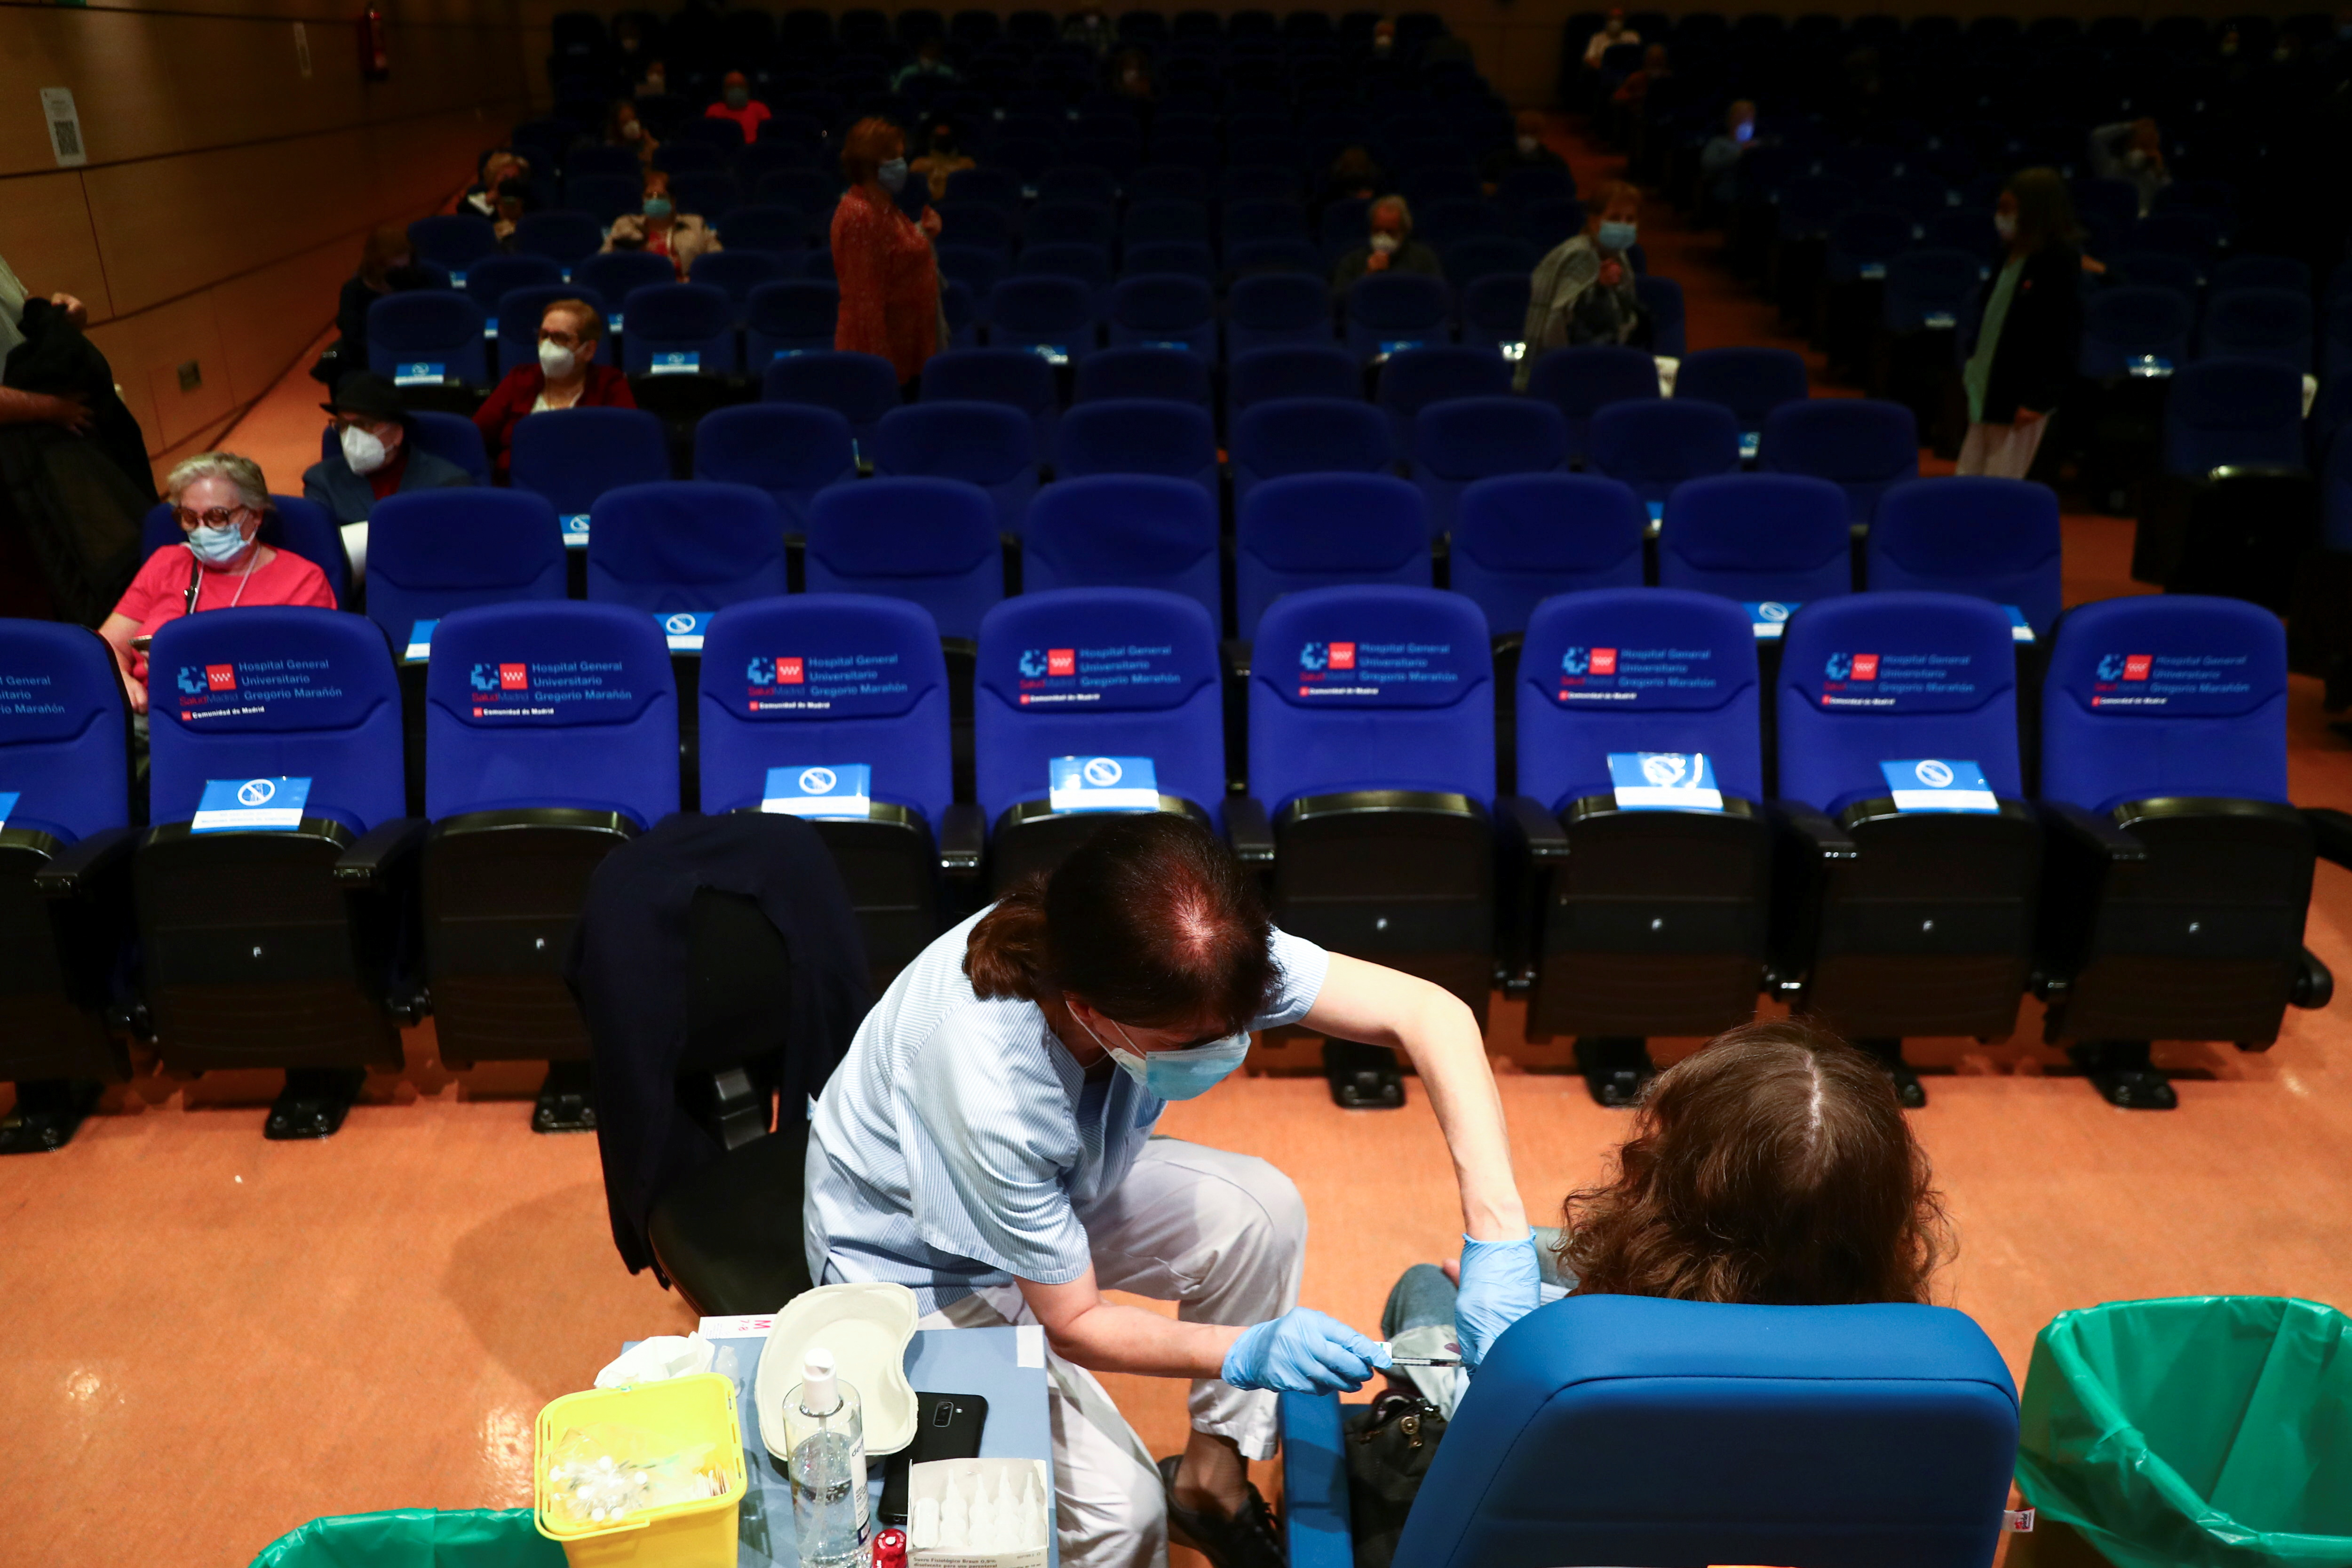 A woman, between 70 and 74 years old, receives her first dose of the Pfizer/BioNTech coronavirus disease (COVID-19) vaccine, as the outbreak continues, in a conference hall at Gregorio Maranon hospital in Madrid, Spain, April 13, 2021. REUTERS/Sergio Perez